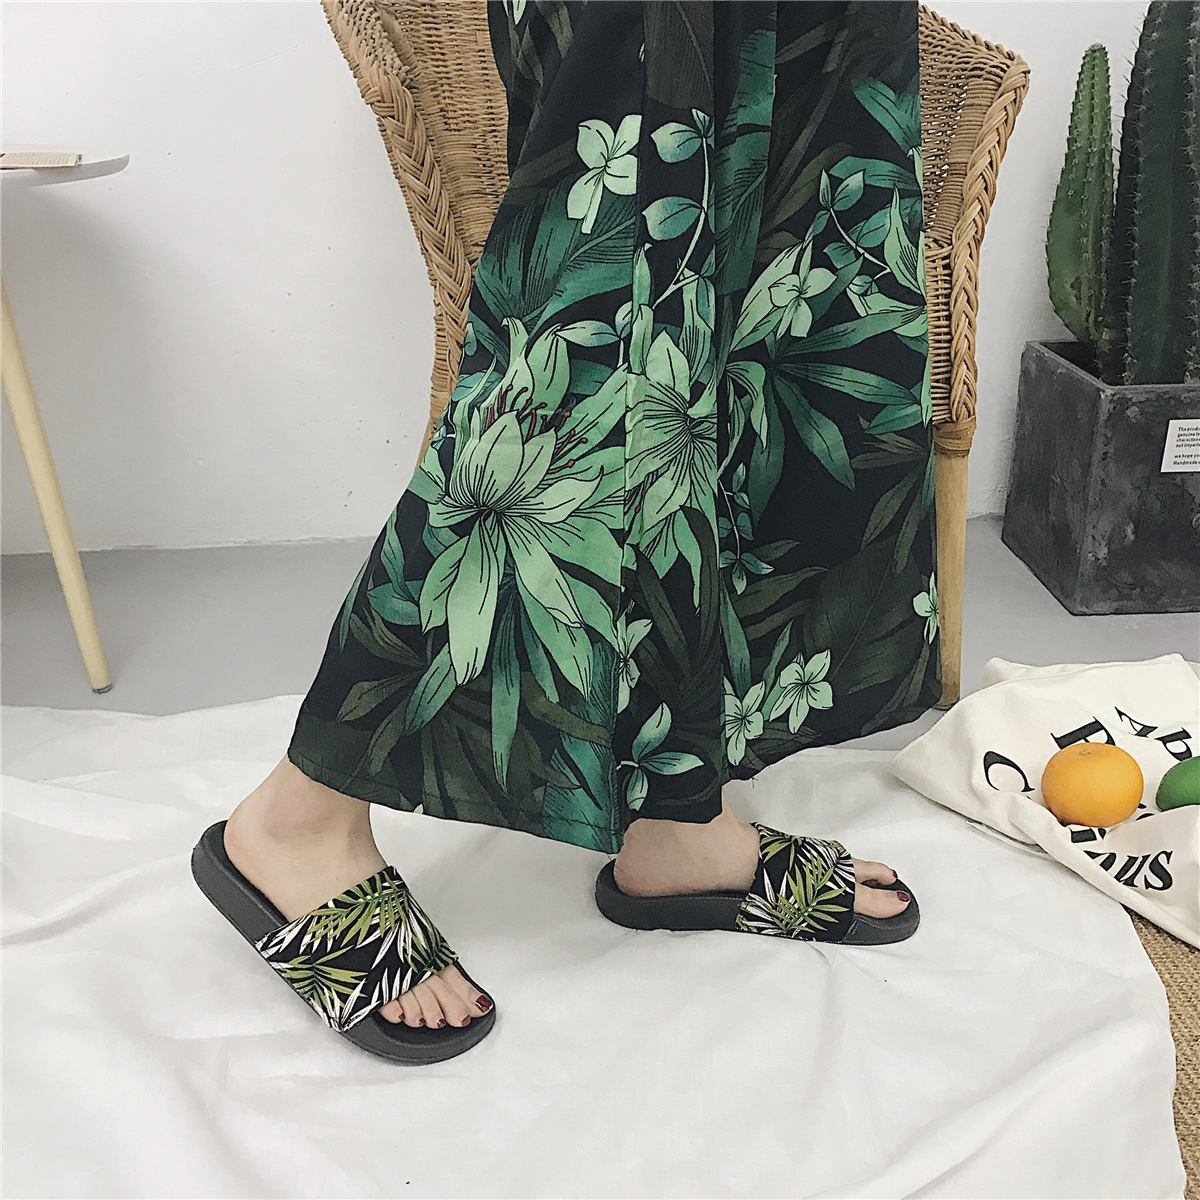 77afe417e19a2f Women Slides Summer Platform Slippers Women Fashion Shoes Green Leaves Flip  Flops Sandals Holiday Beach Slides Zapatillas Mujer-in Slippers from Shoes  on ...